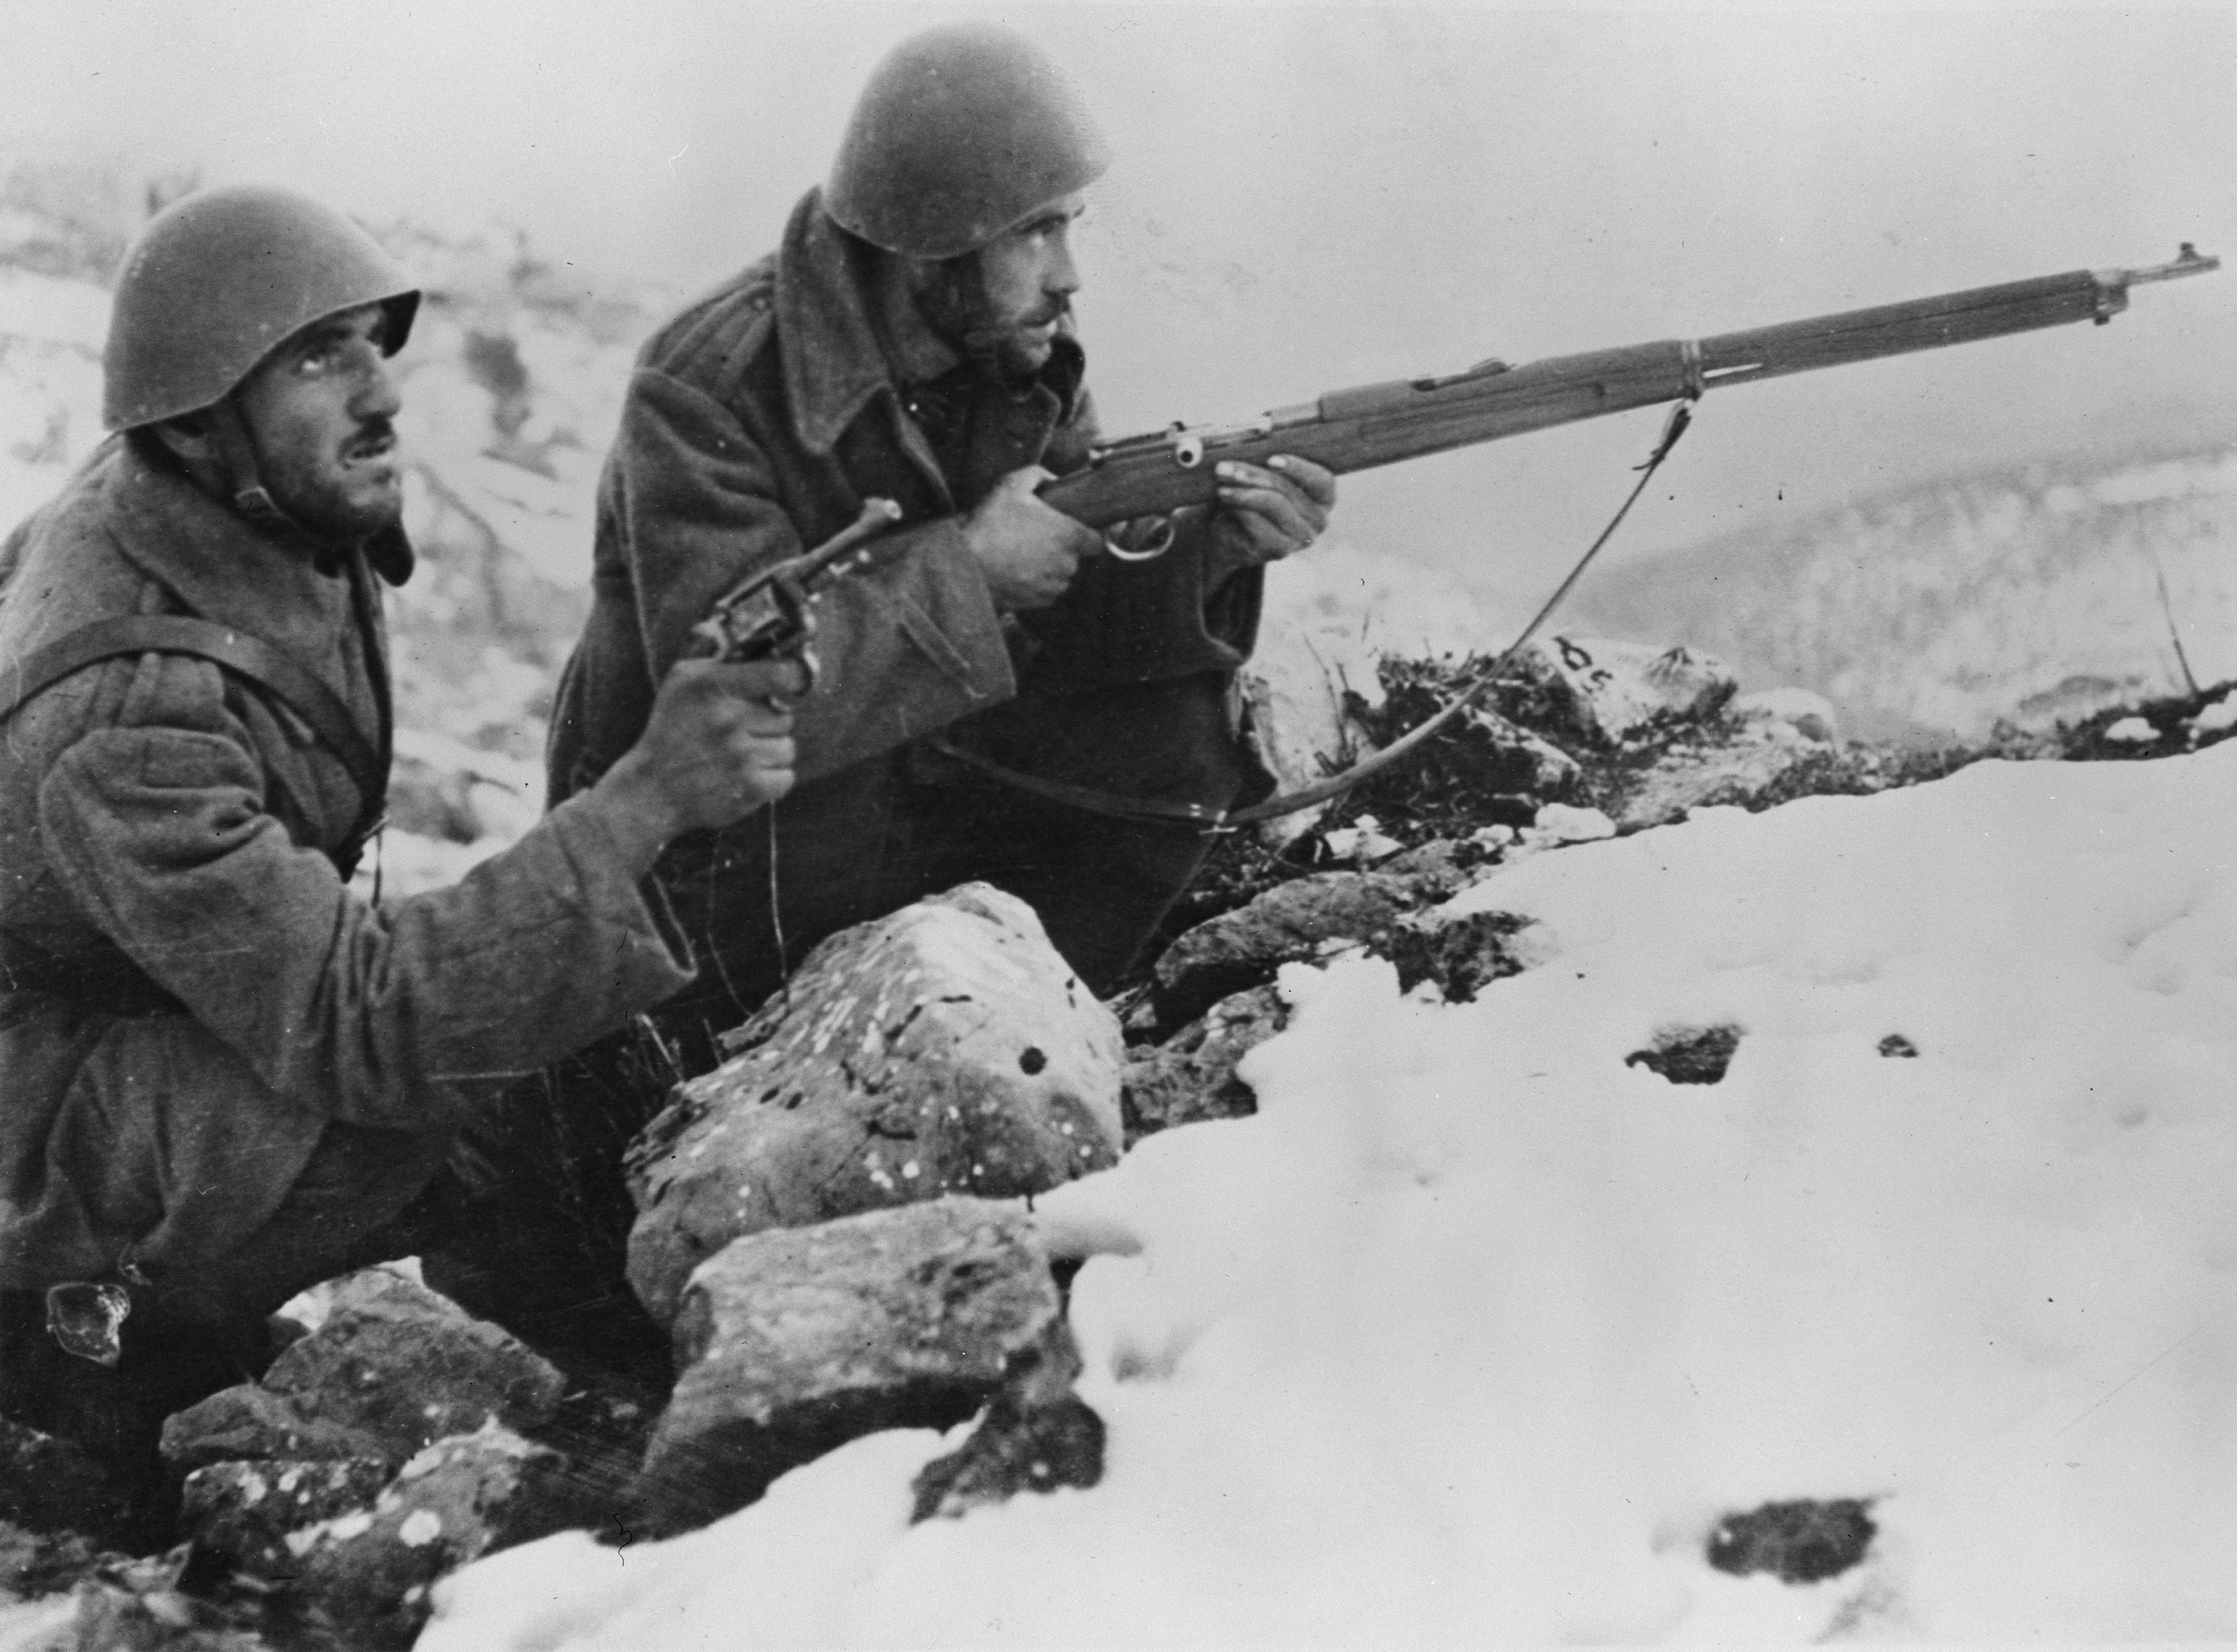 Greek soldiers on the mountains of Albania fighting the Italian fascist invasion of Greece, winter 1940-41.